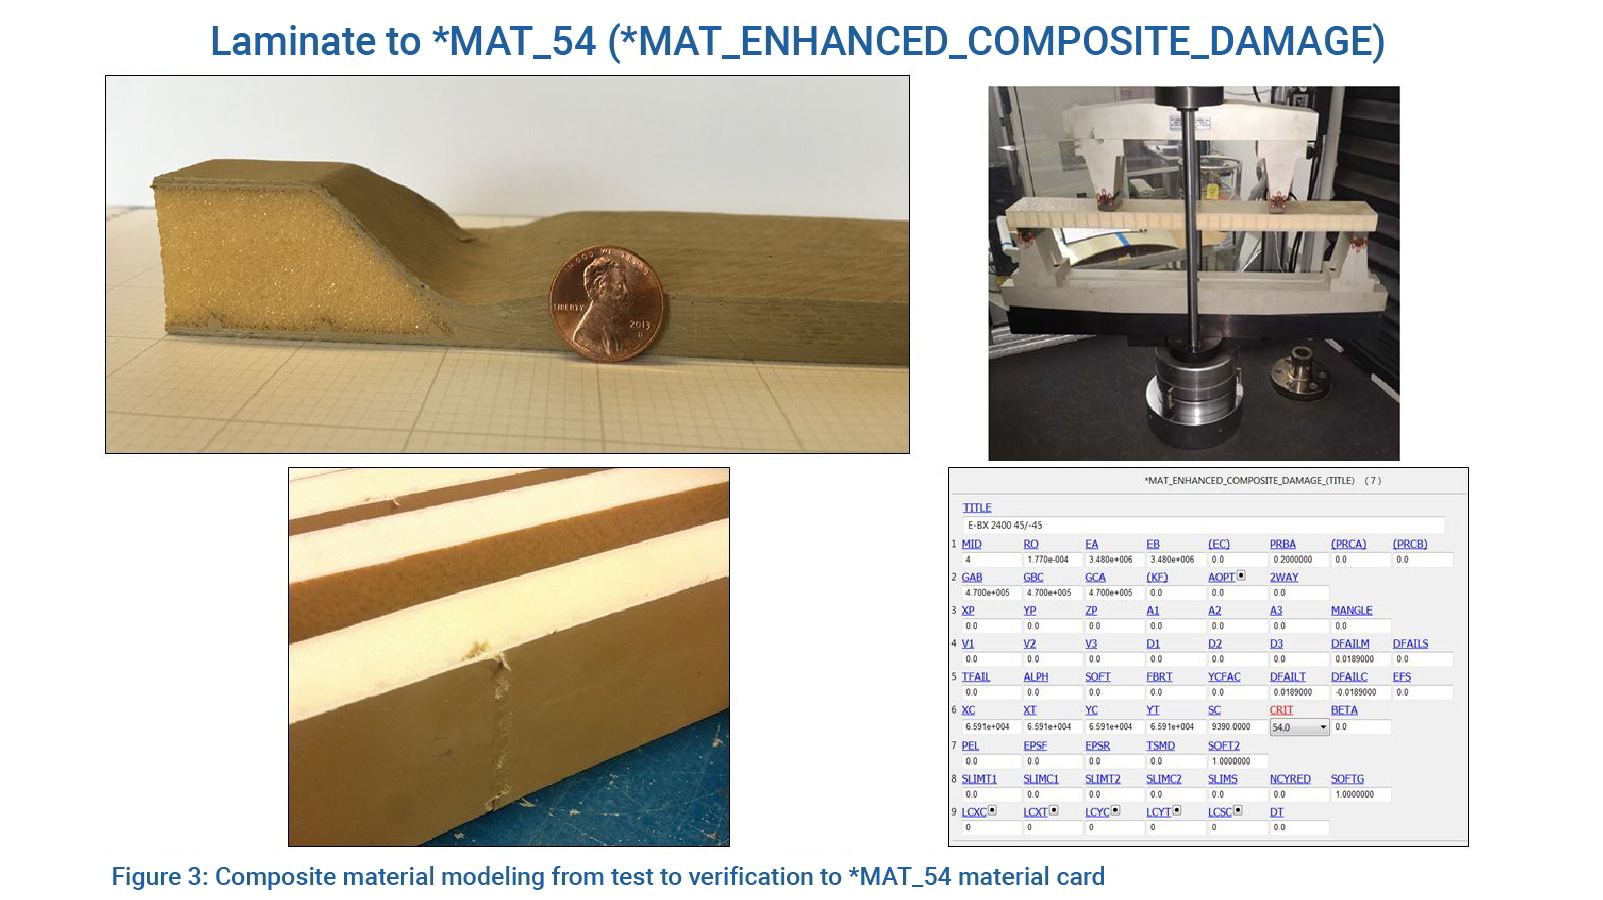 Figure 3: Composite material modeling from test to verification to *MAT_54 material card